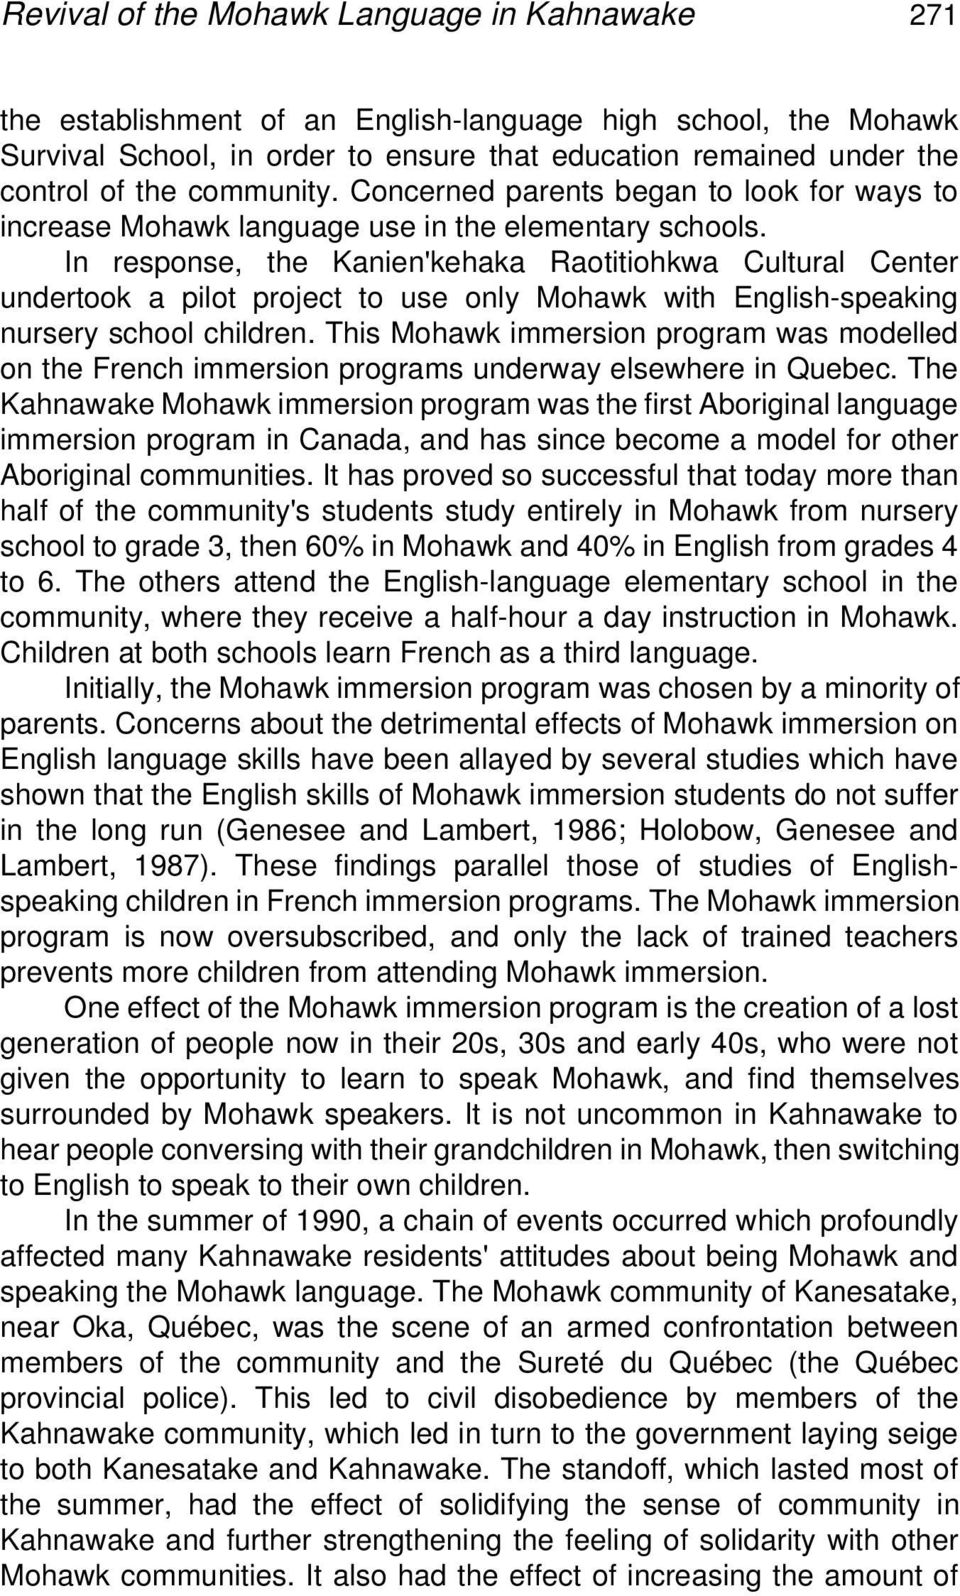 In response, the Kanien'kehaka Raotitiohkwa Cultural Center undertook a pilot project to use only Mohawk with English-speaking nursery school children.